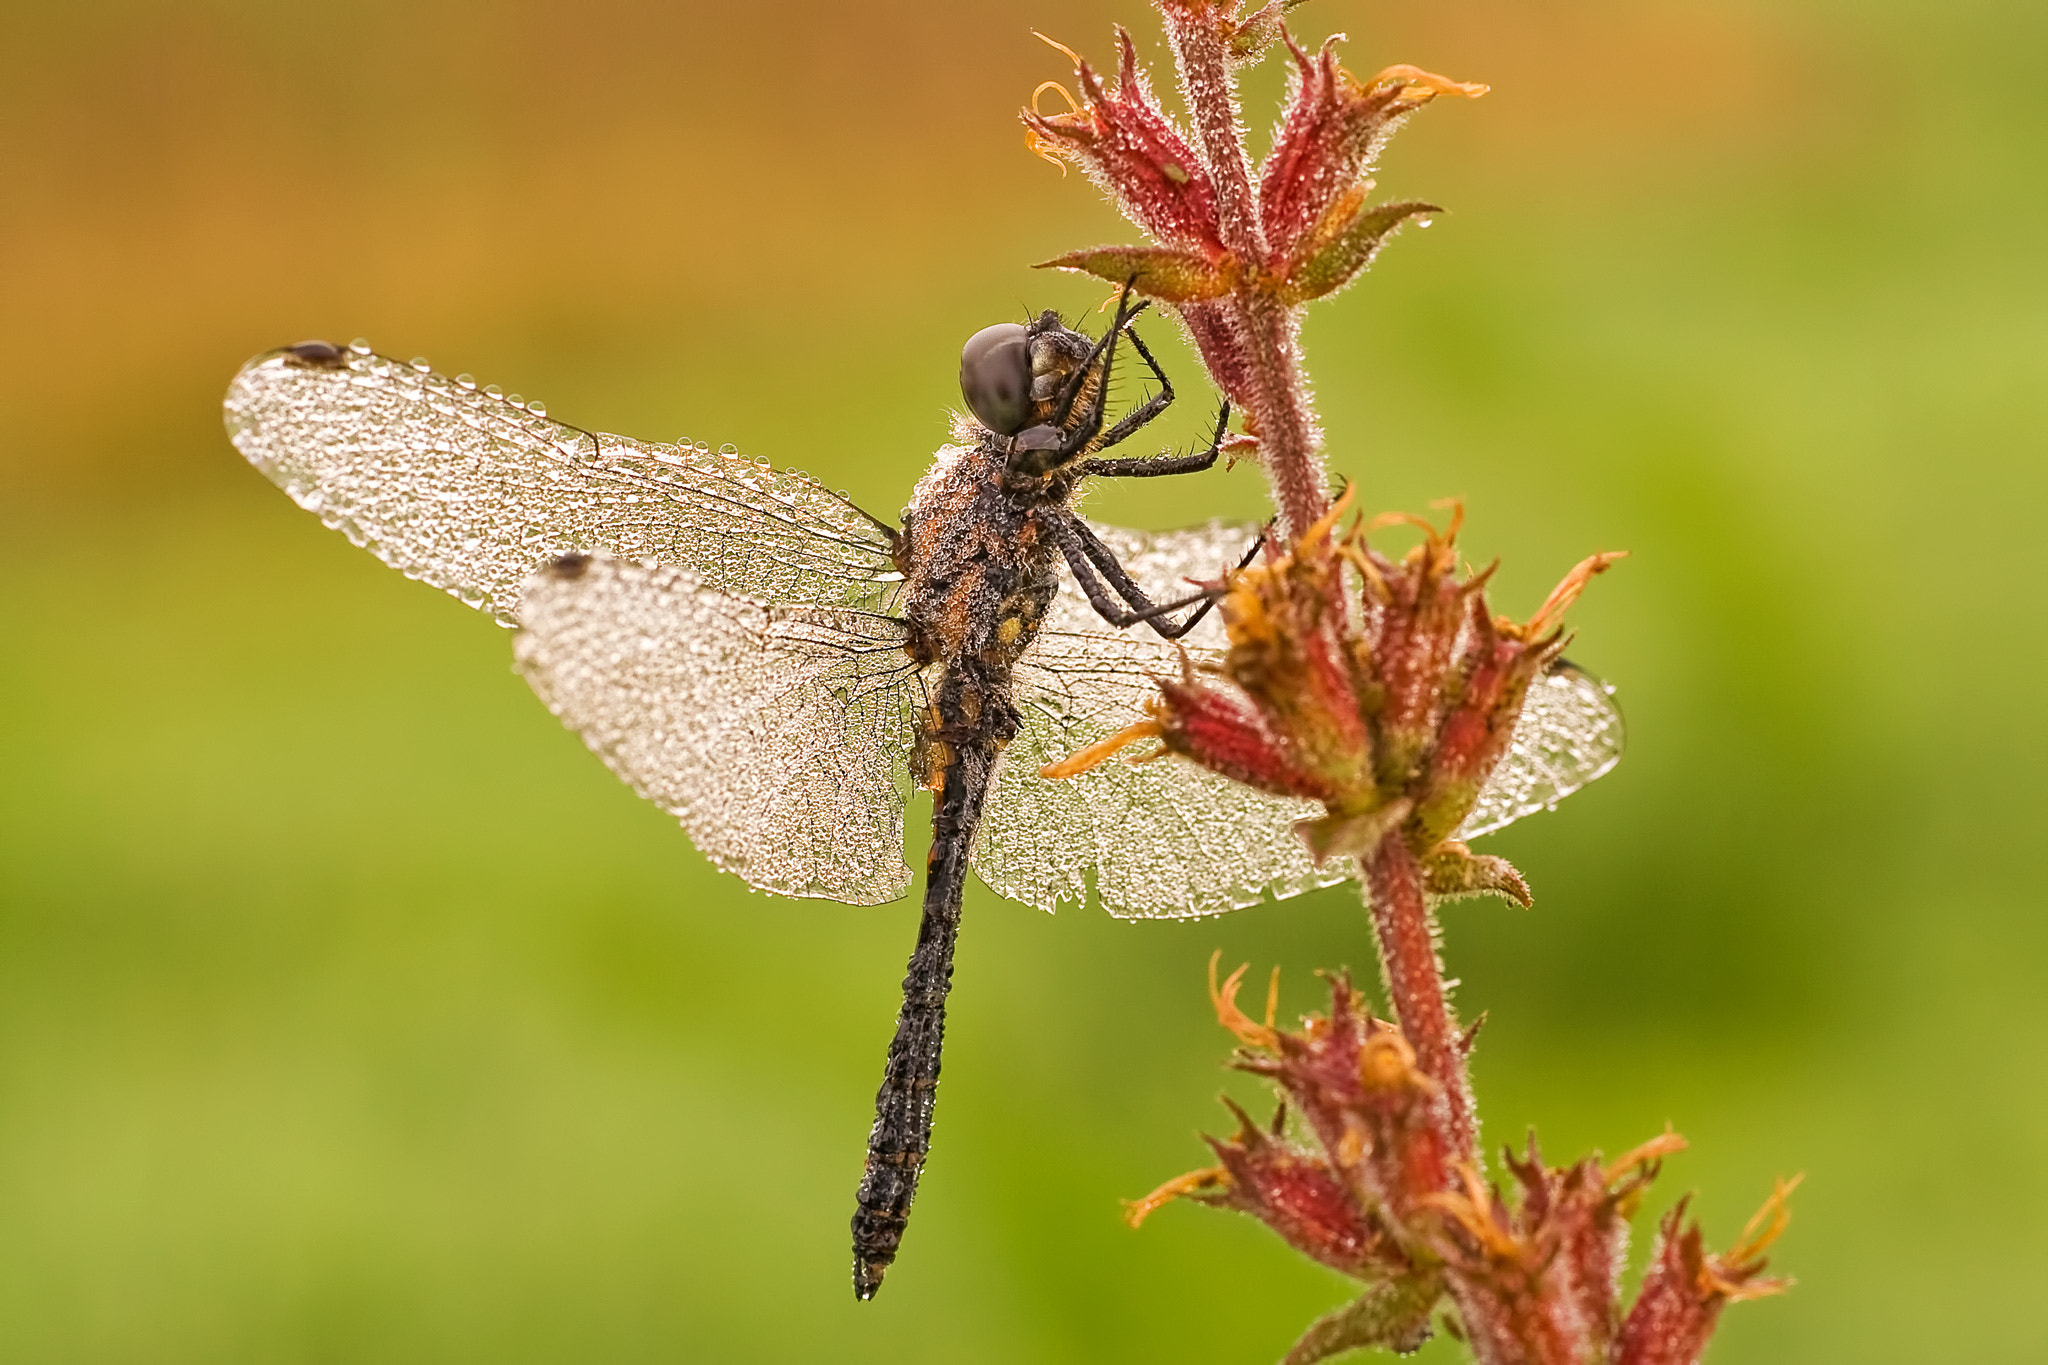 Photograph Dragon Fly by Dirk Seifert on 500px